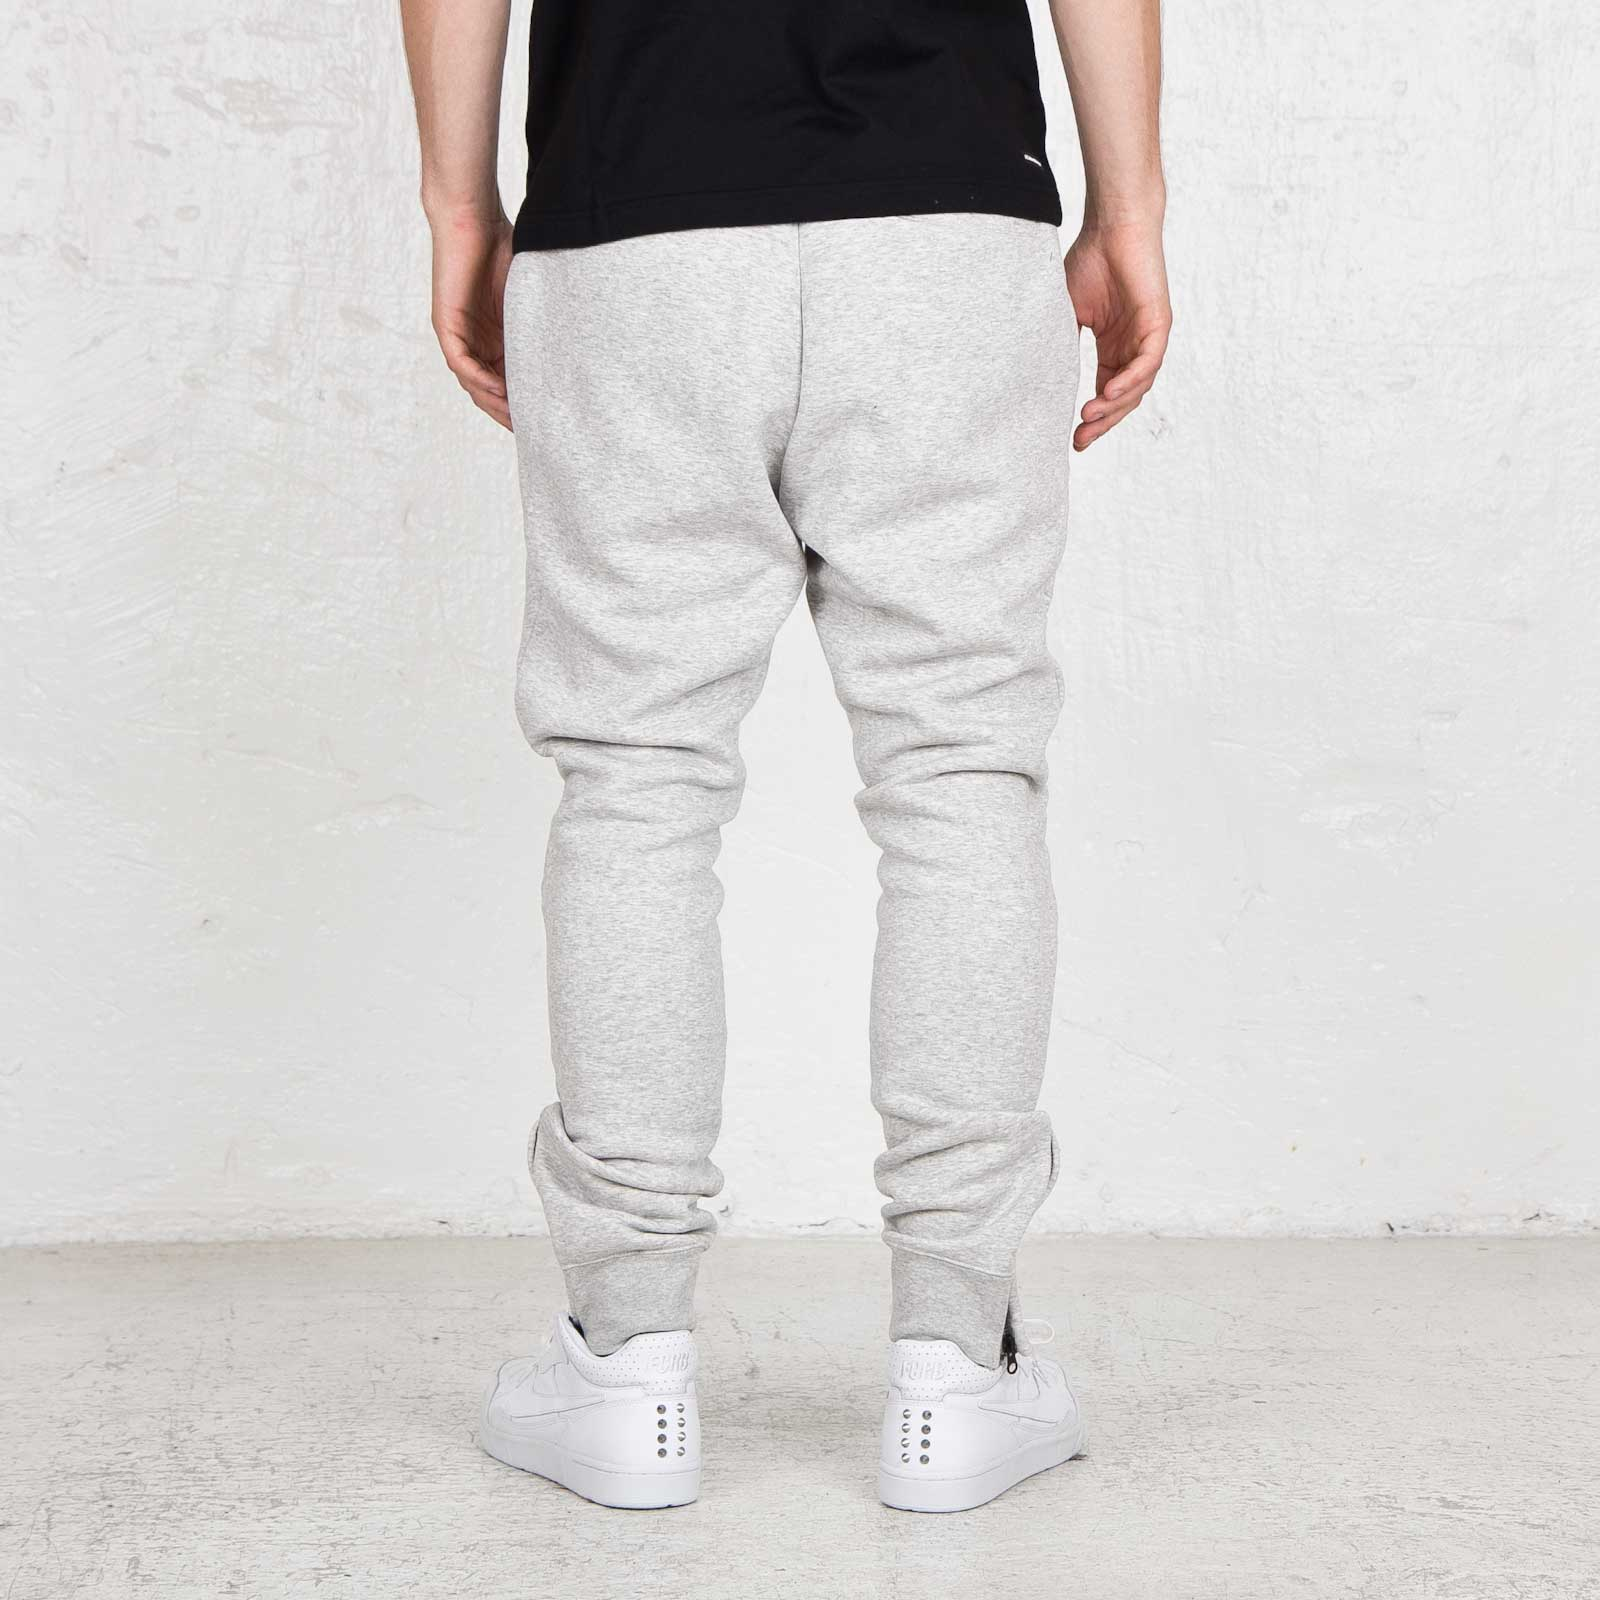 premium selection 5075f 8fbb0 ... Nike AS FCRB Sweat Long Pant ...